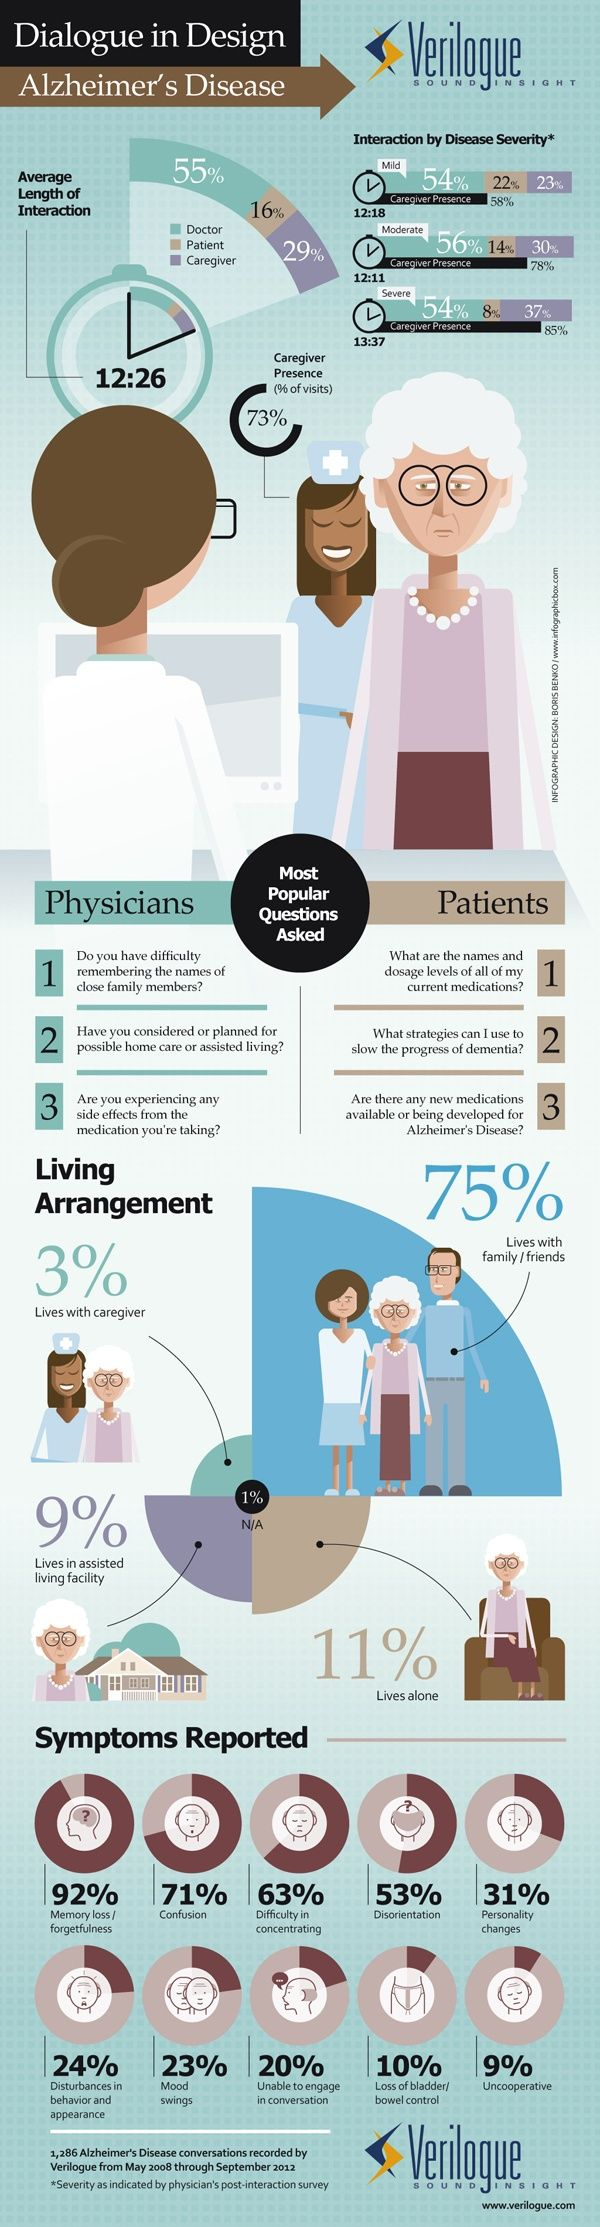 17 best images about infographics alzheimers dementia on